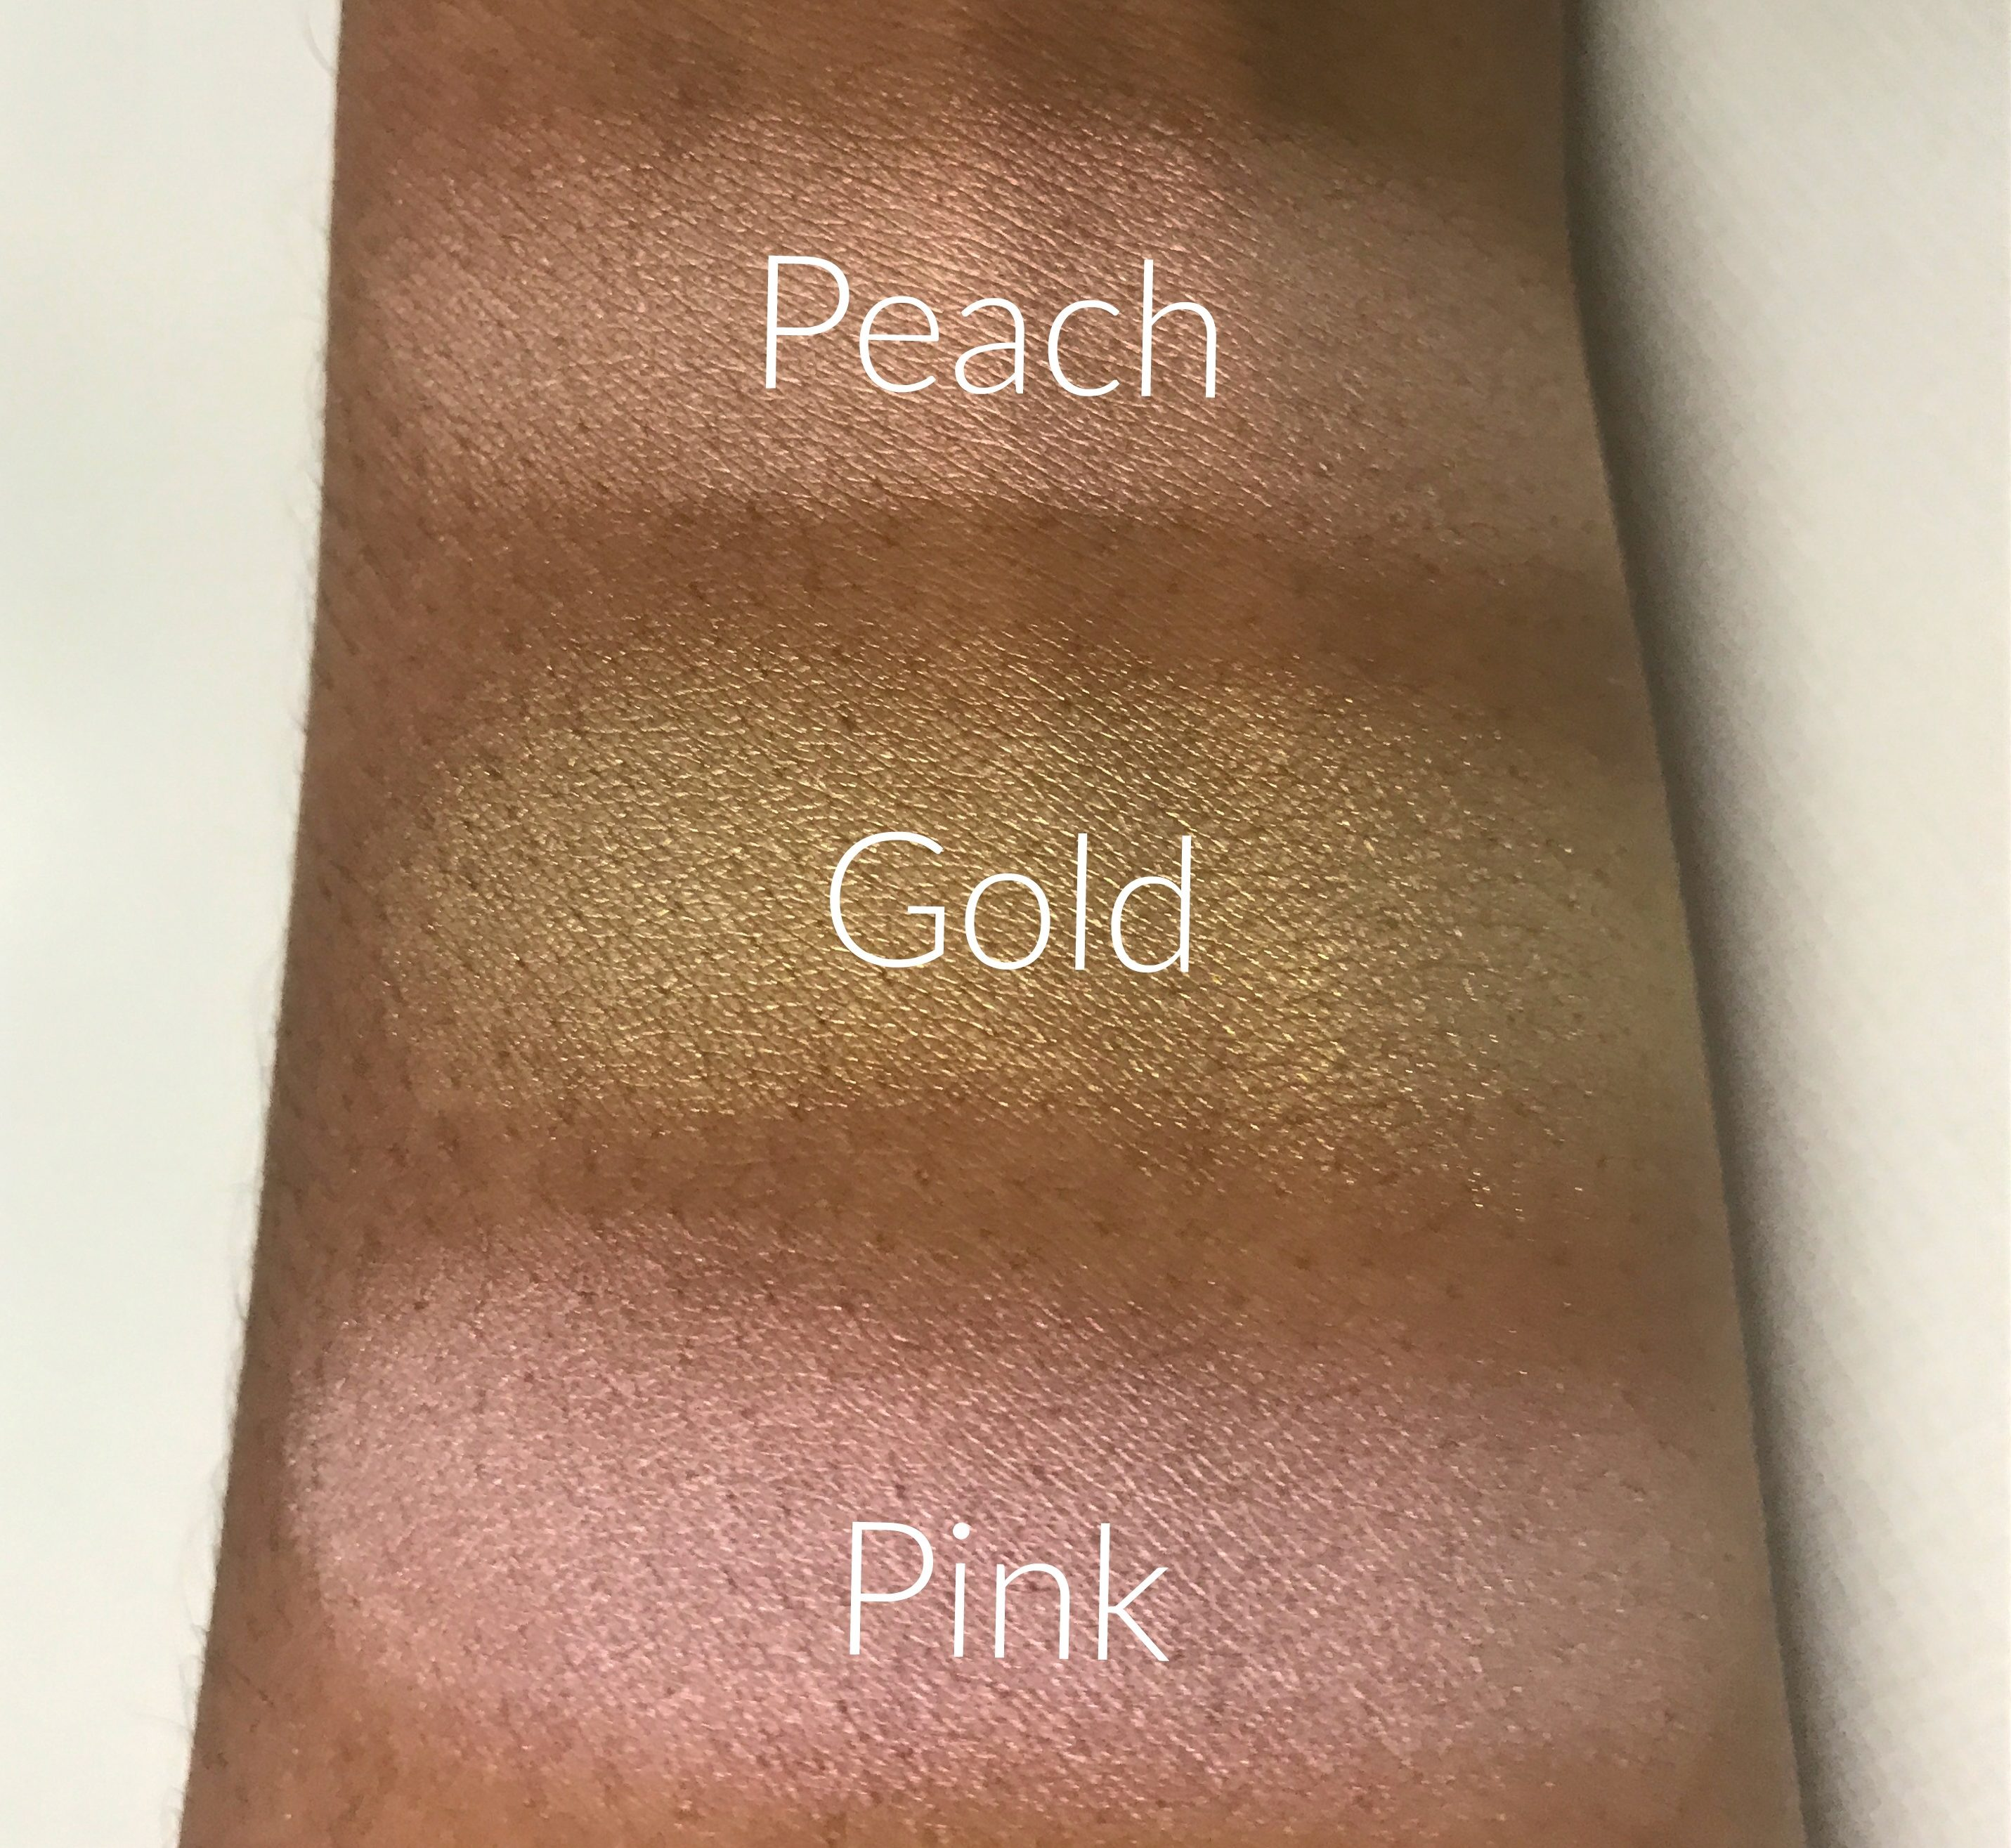 lime-crime-opals-opalescent-highlighter-palette-swatches-on-dark-skin-pink-peach-gold-makeup-vegan-cruelty-free-product-review-beauty-and-the-beat-blog